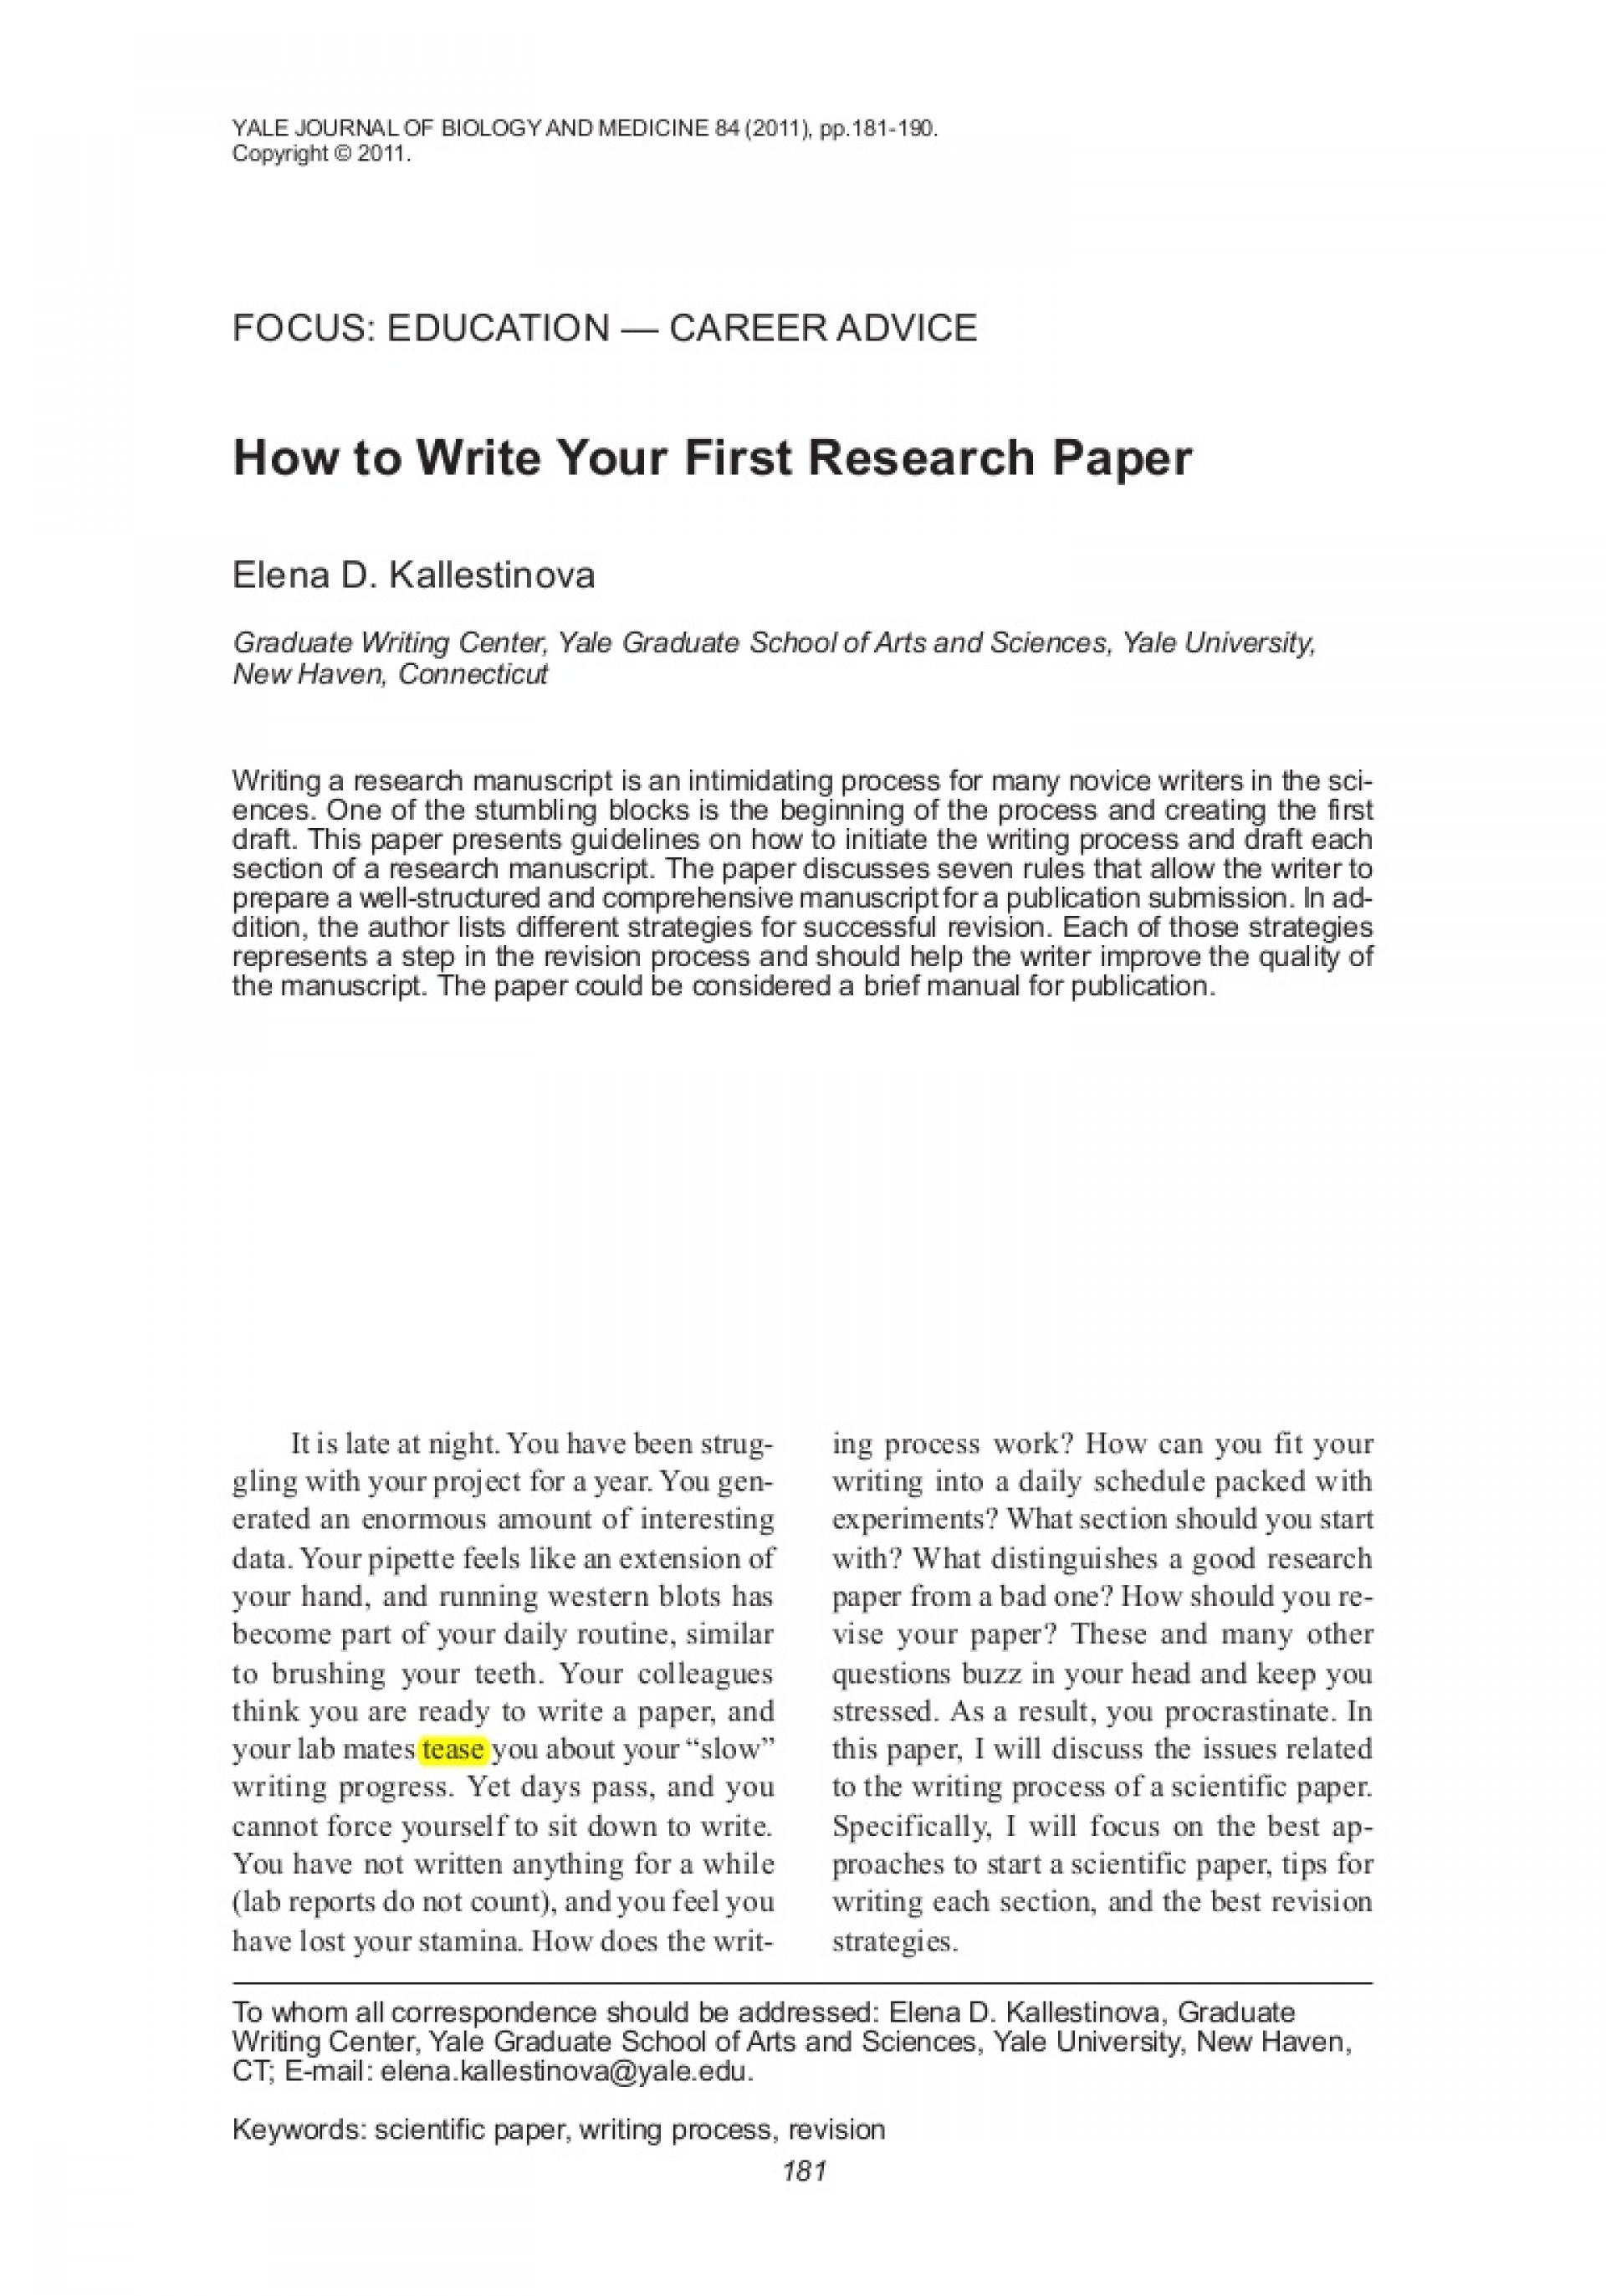 008 Research Paper How To Write Papers Howtowriteyourfirstresearchpaper Lva1 App6891 Thumbnail Outstanding A Proposal In Apa Format Do I Conclusion For Outline 1920